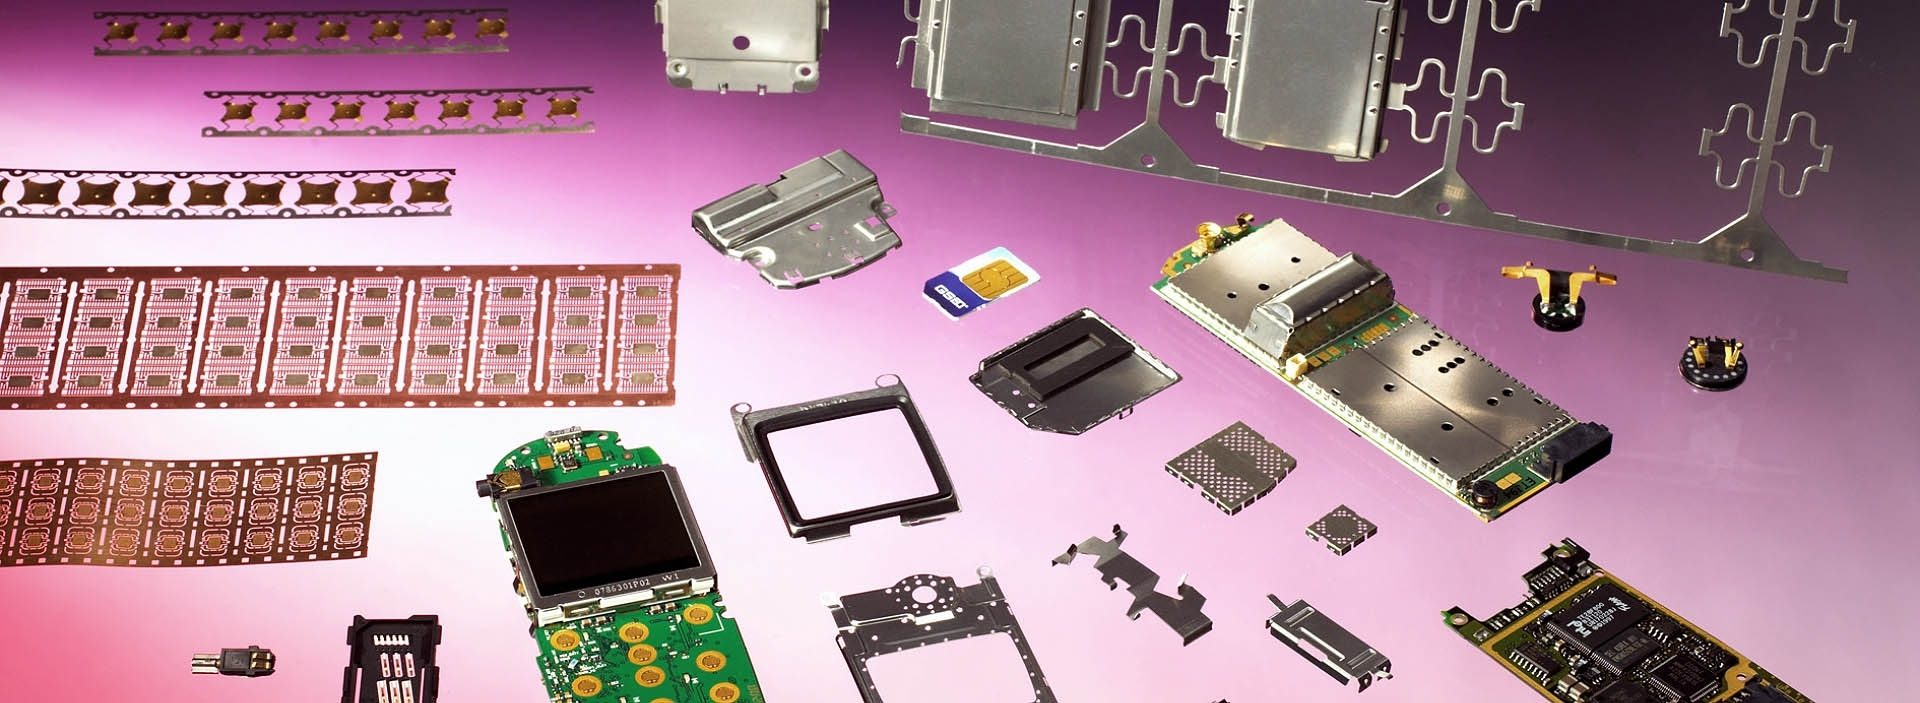 Parts for telecommunication